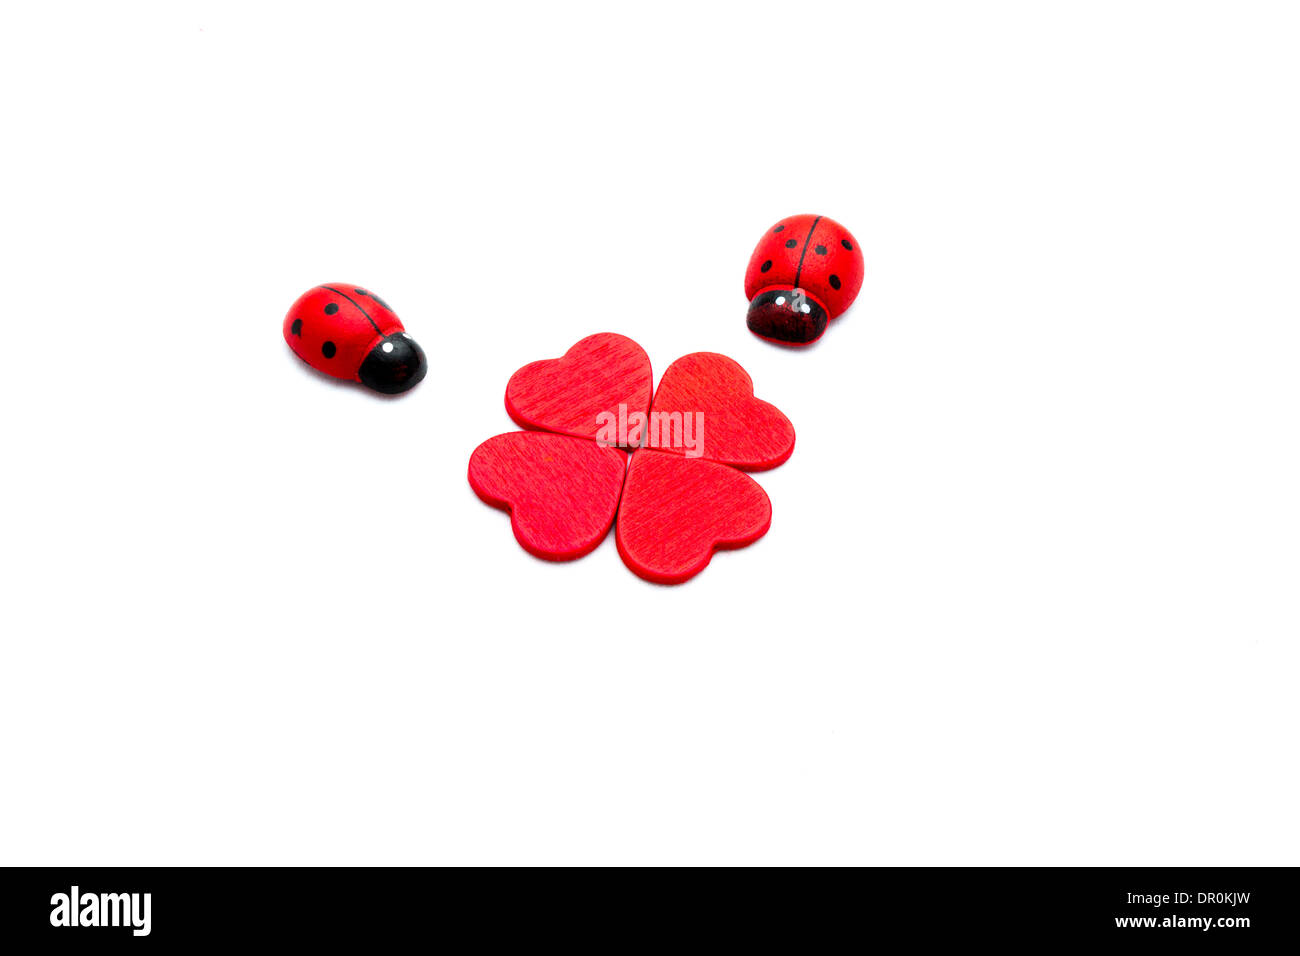 Clover and ladybugs for Valentines Day concept - Stock Image